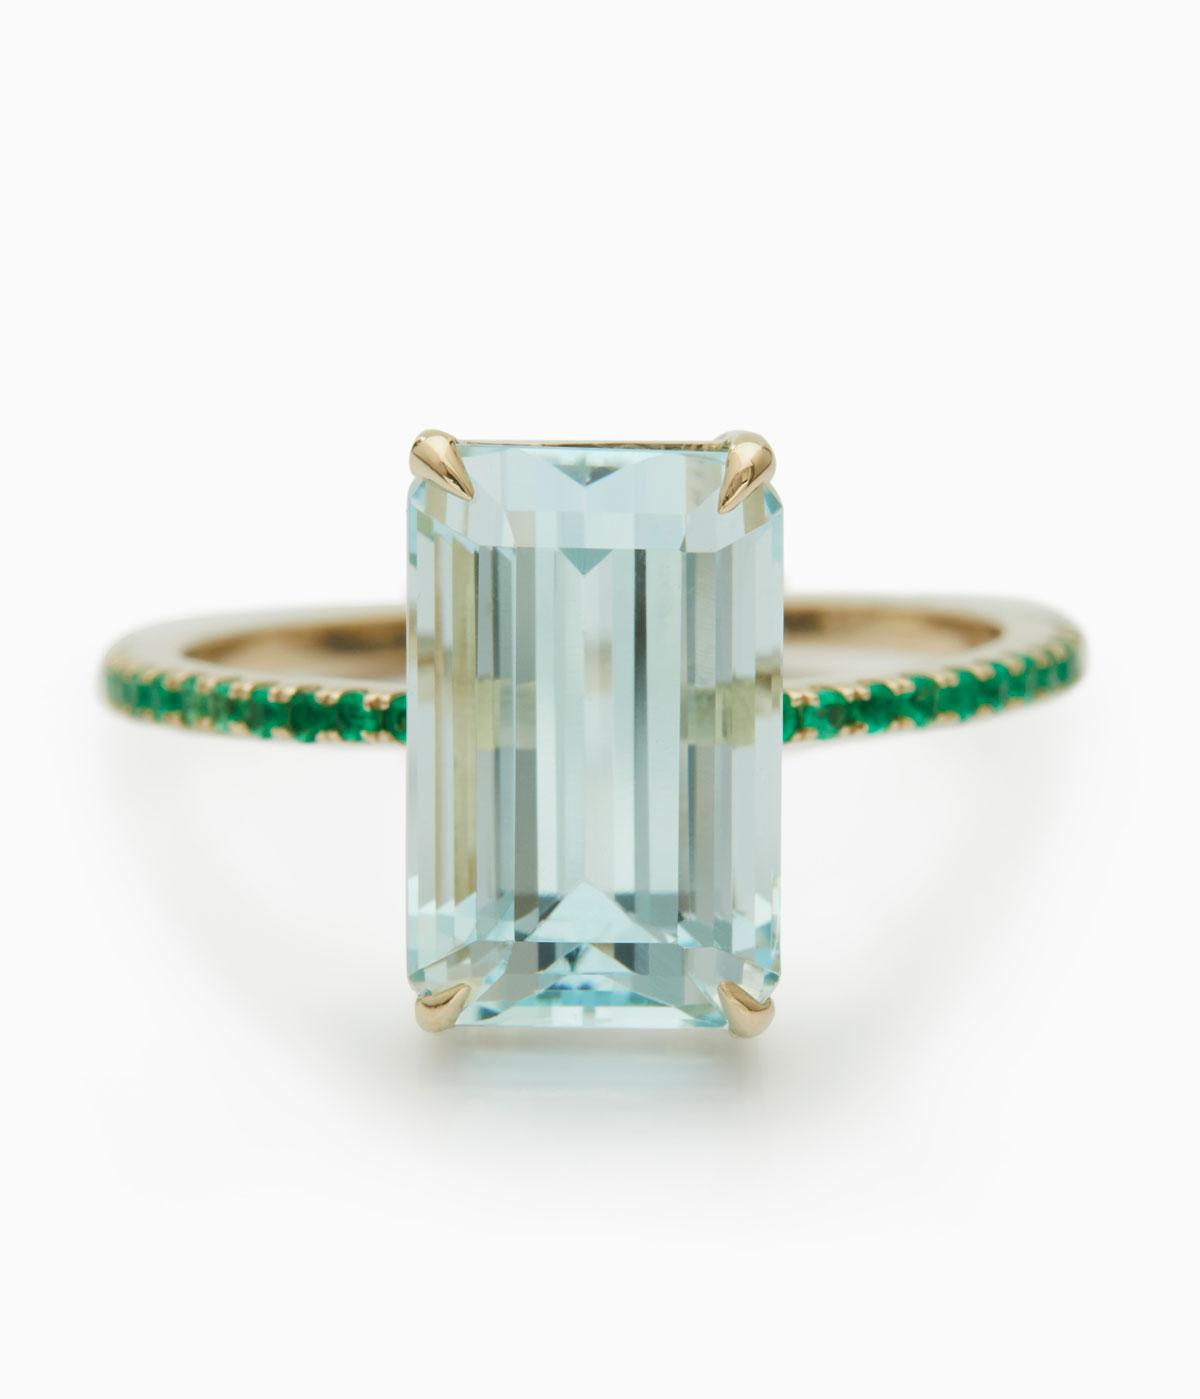 Yi Collection's rainbow-hued engagement rings